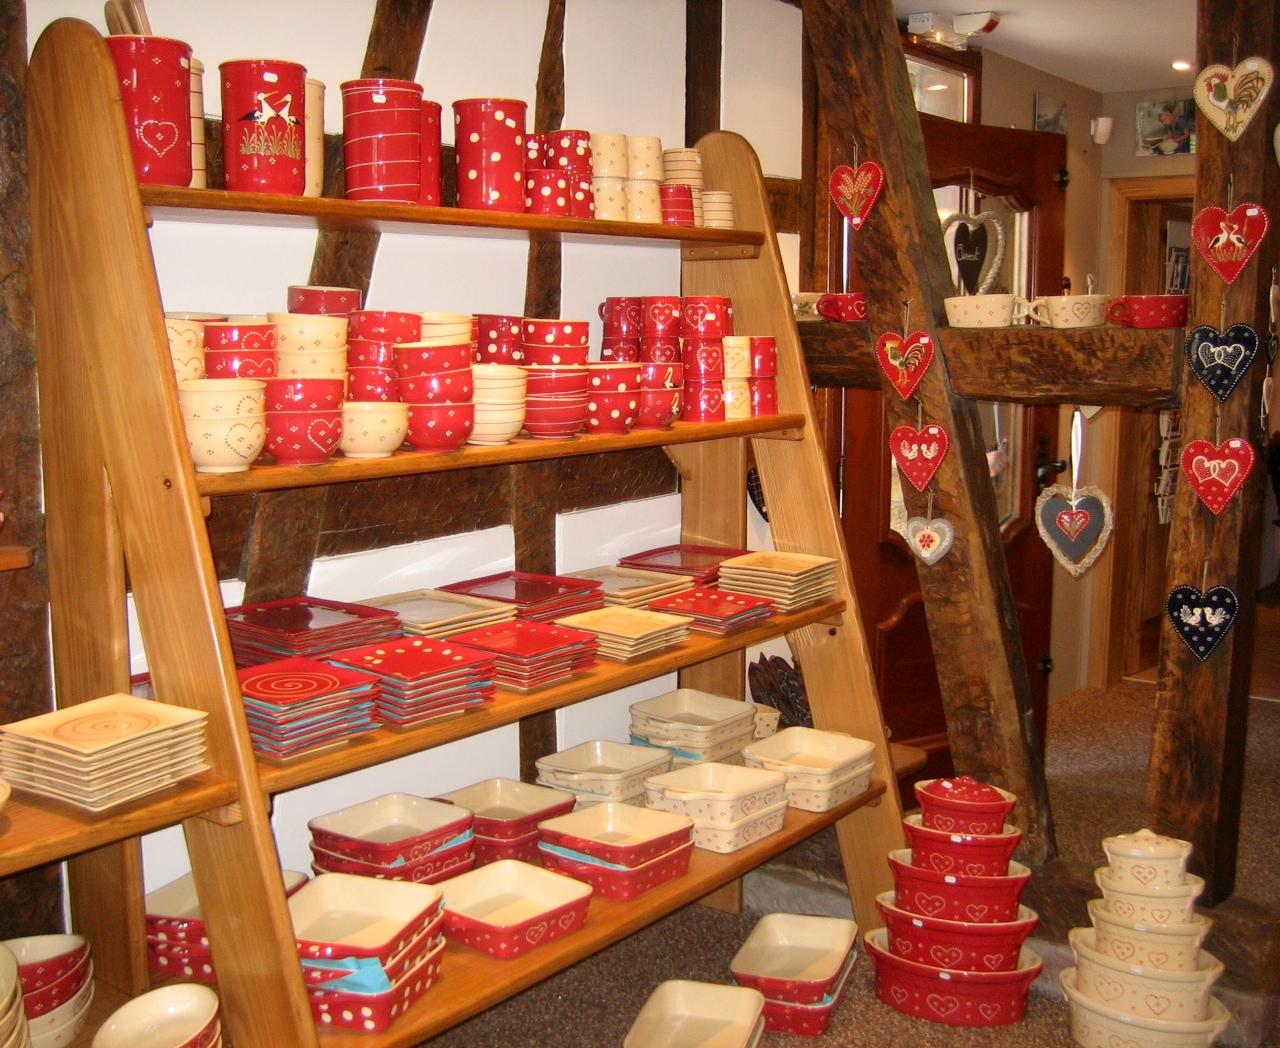 Pottery in the Alsace